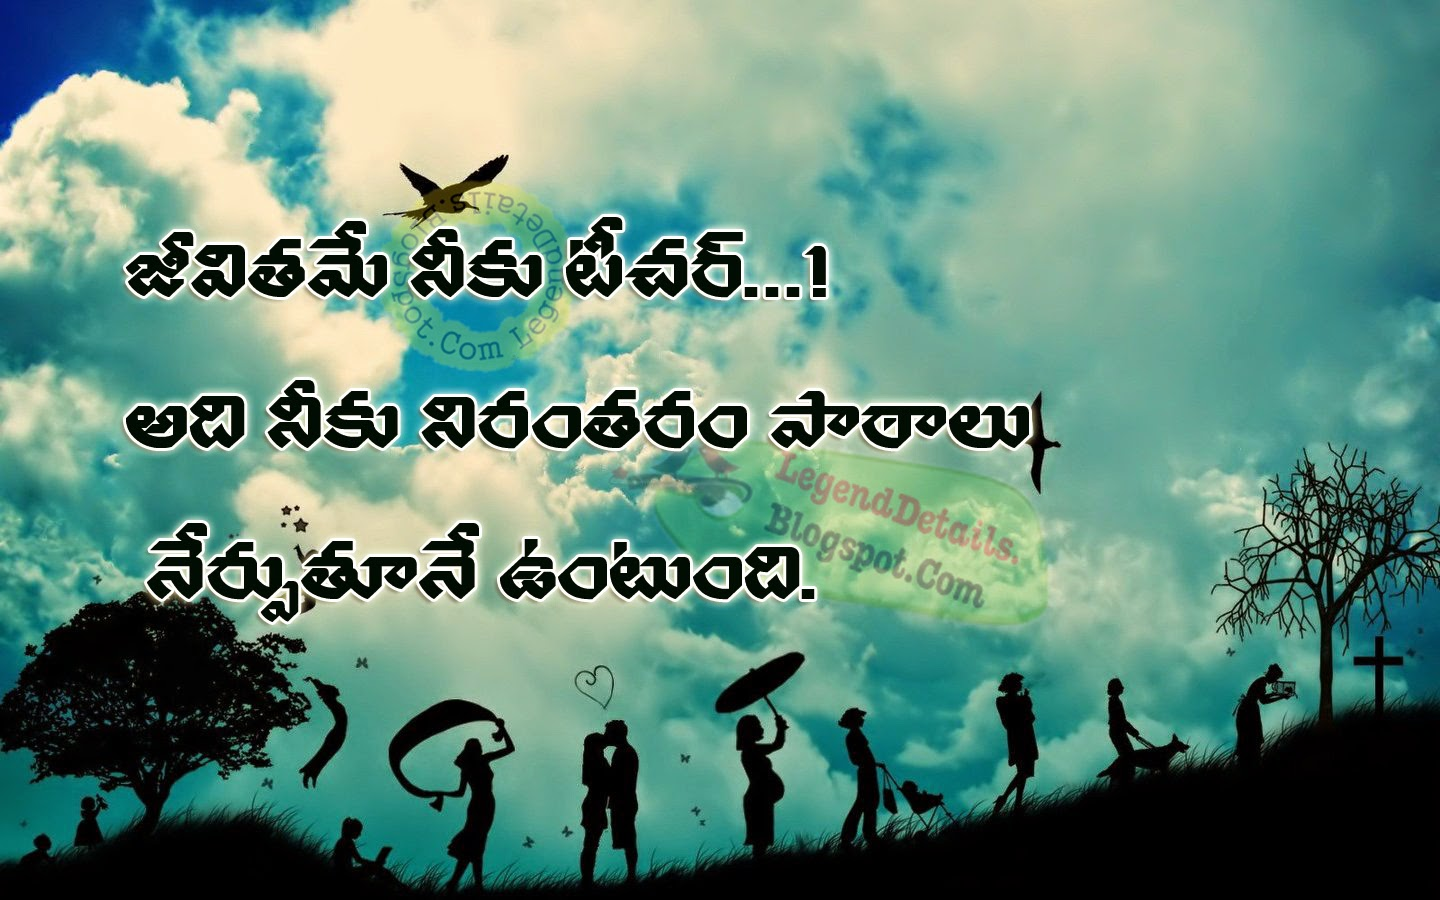 Telugu Quotes On Life Download Love Quotes Telugu Images Hd Best